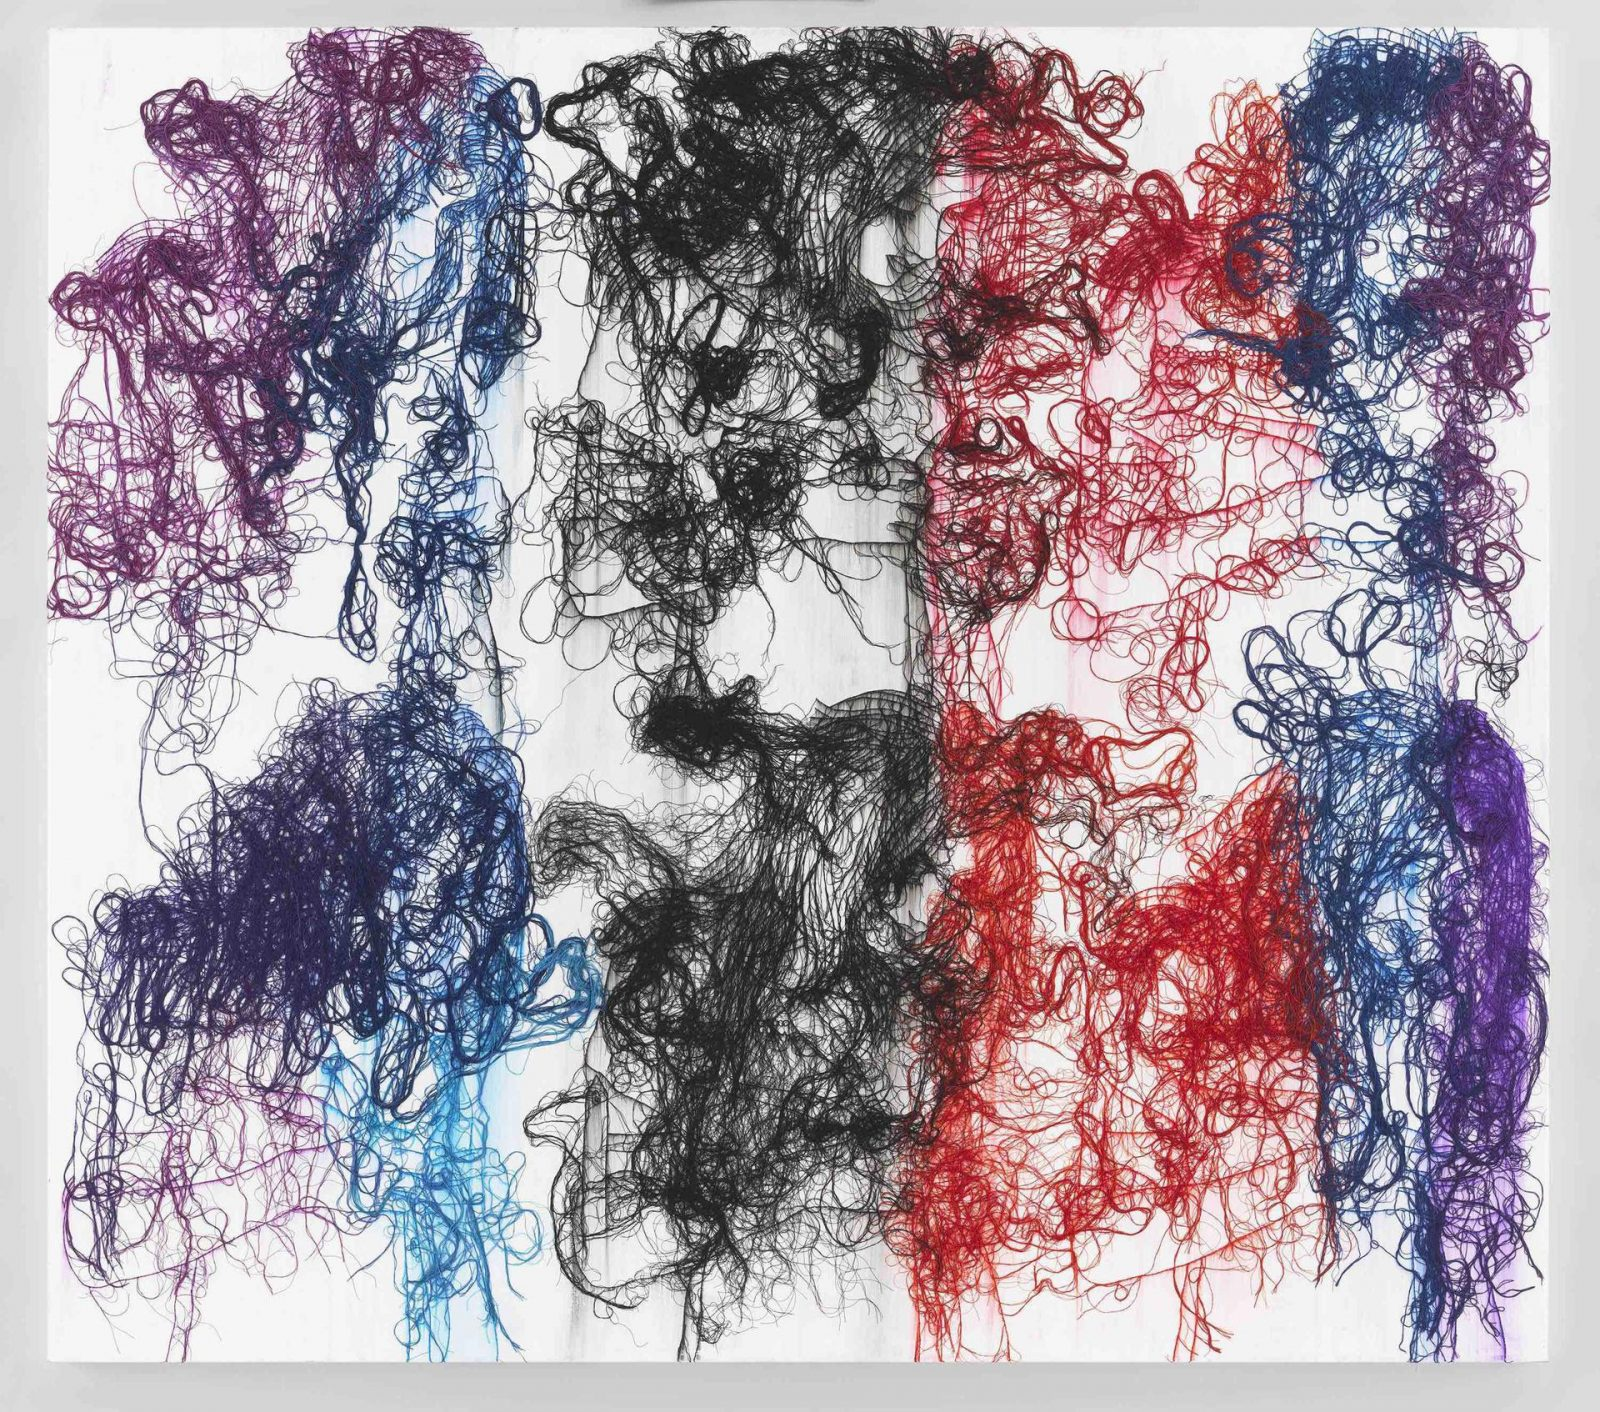 Ghada Amer, Glimpse into a New Painting, 2018. Acrylic, embroidery and gel medium on canvas, 64 x 72 inches (162.6 x 182.9 cm). Courtesy the artist and Marianne Boesky Gallery.